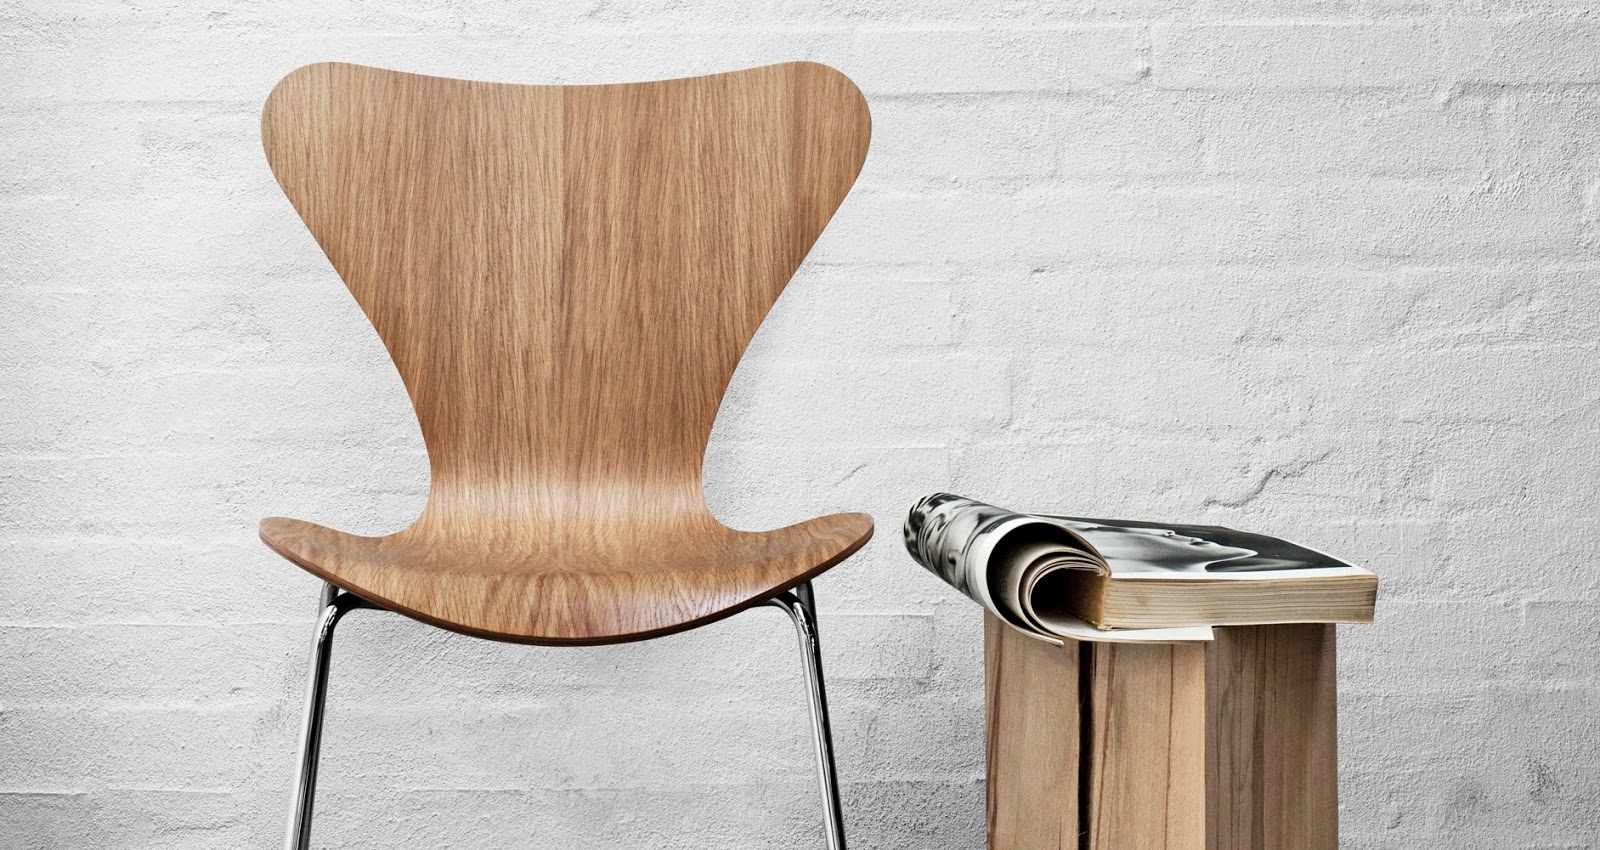 The Lunning Prize, Awarded To Outstanding Scandinavian Designers Between  1951 And 1970, Was Instrumental In Both Making Scandinavian Design A  Recognized ...